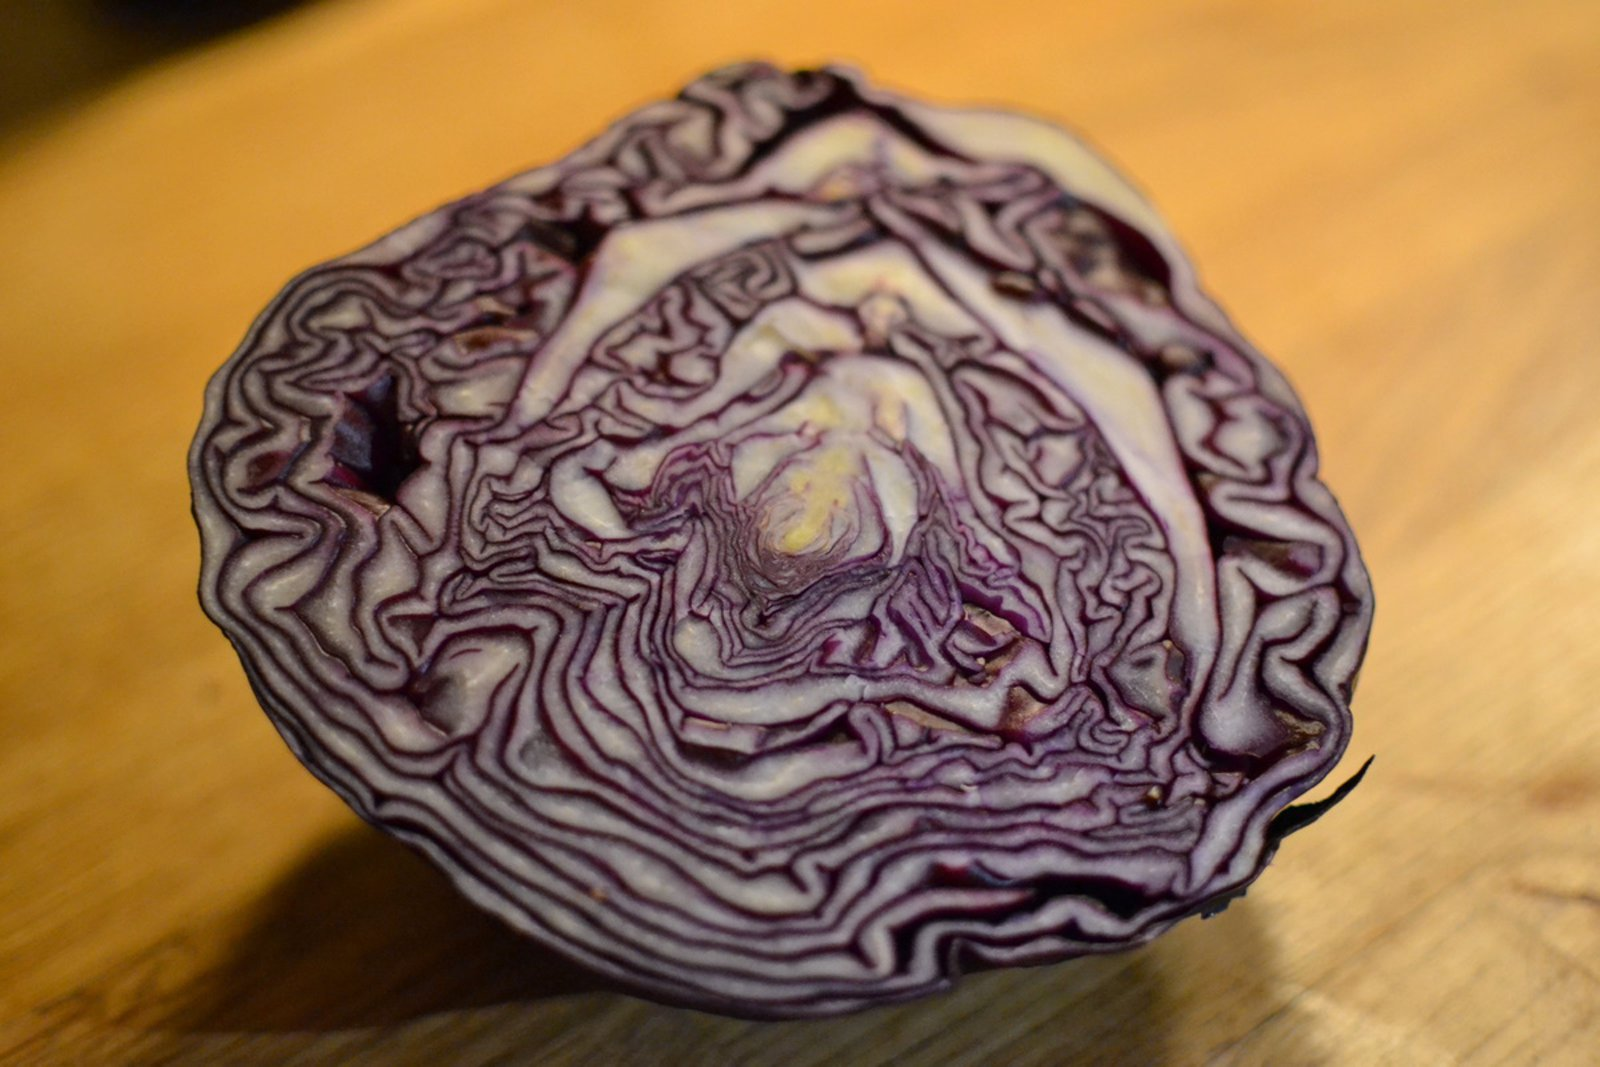 redcabbage